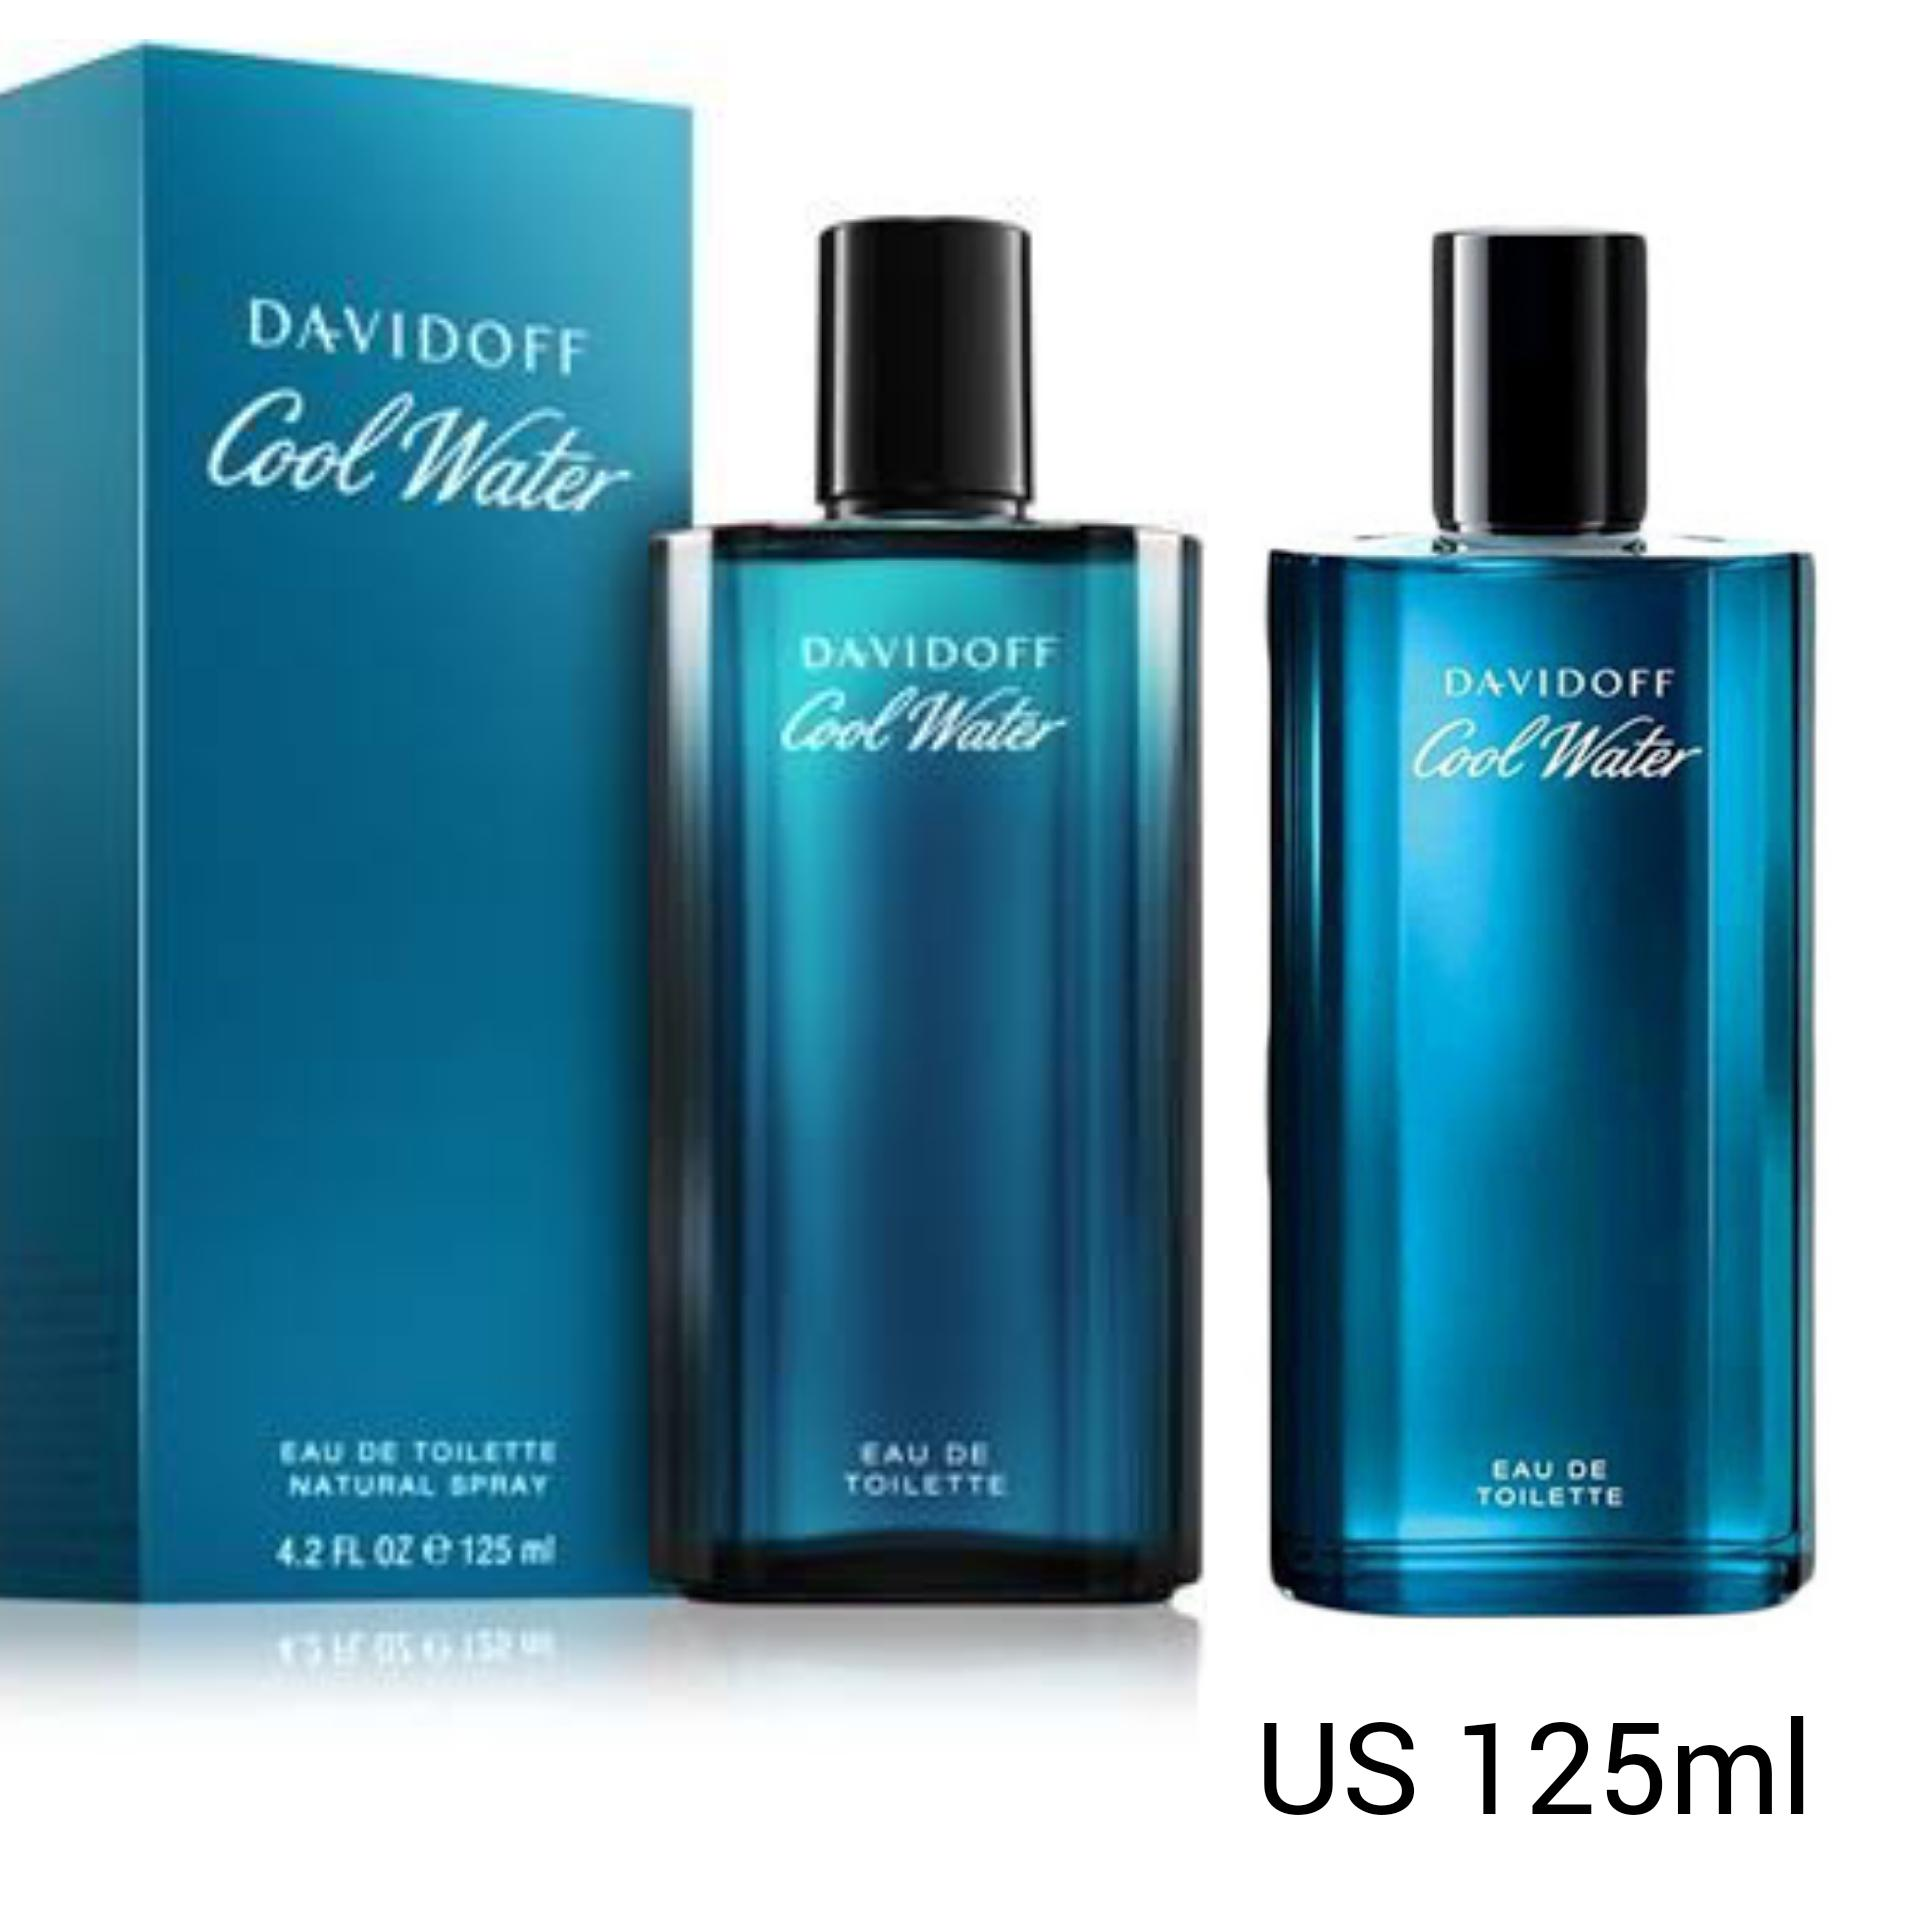 DAVIDOFF COOL WATER MENS PERFUME EAU DE TOILETTE 125ML